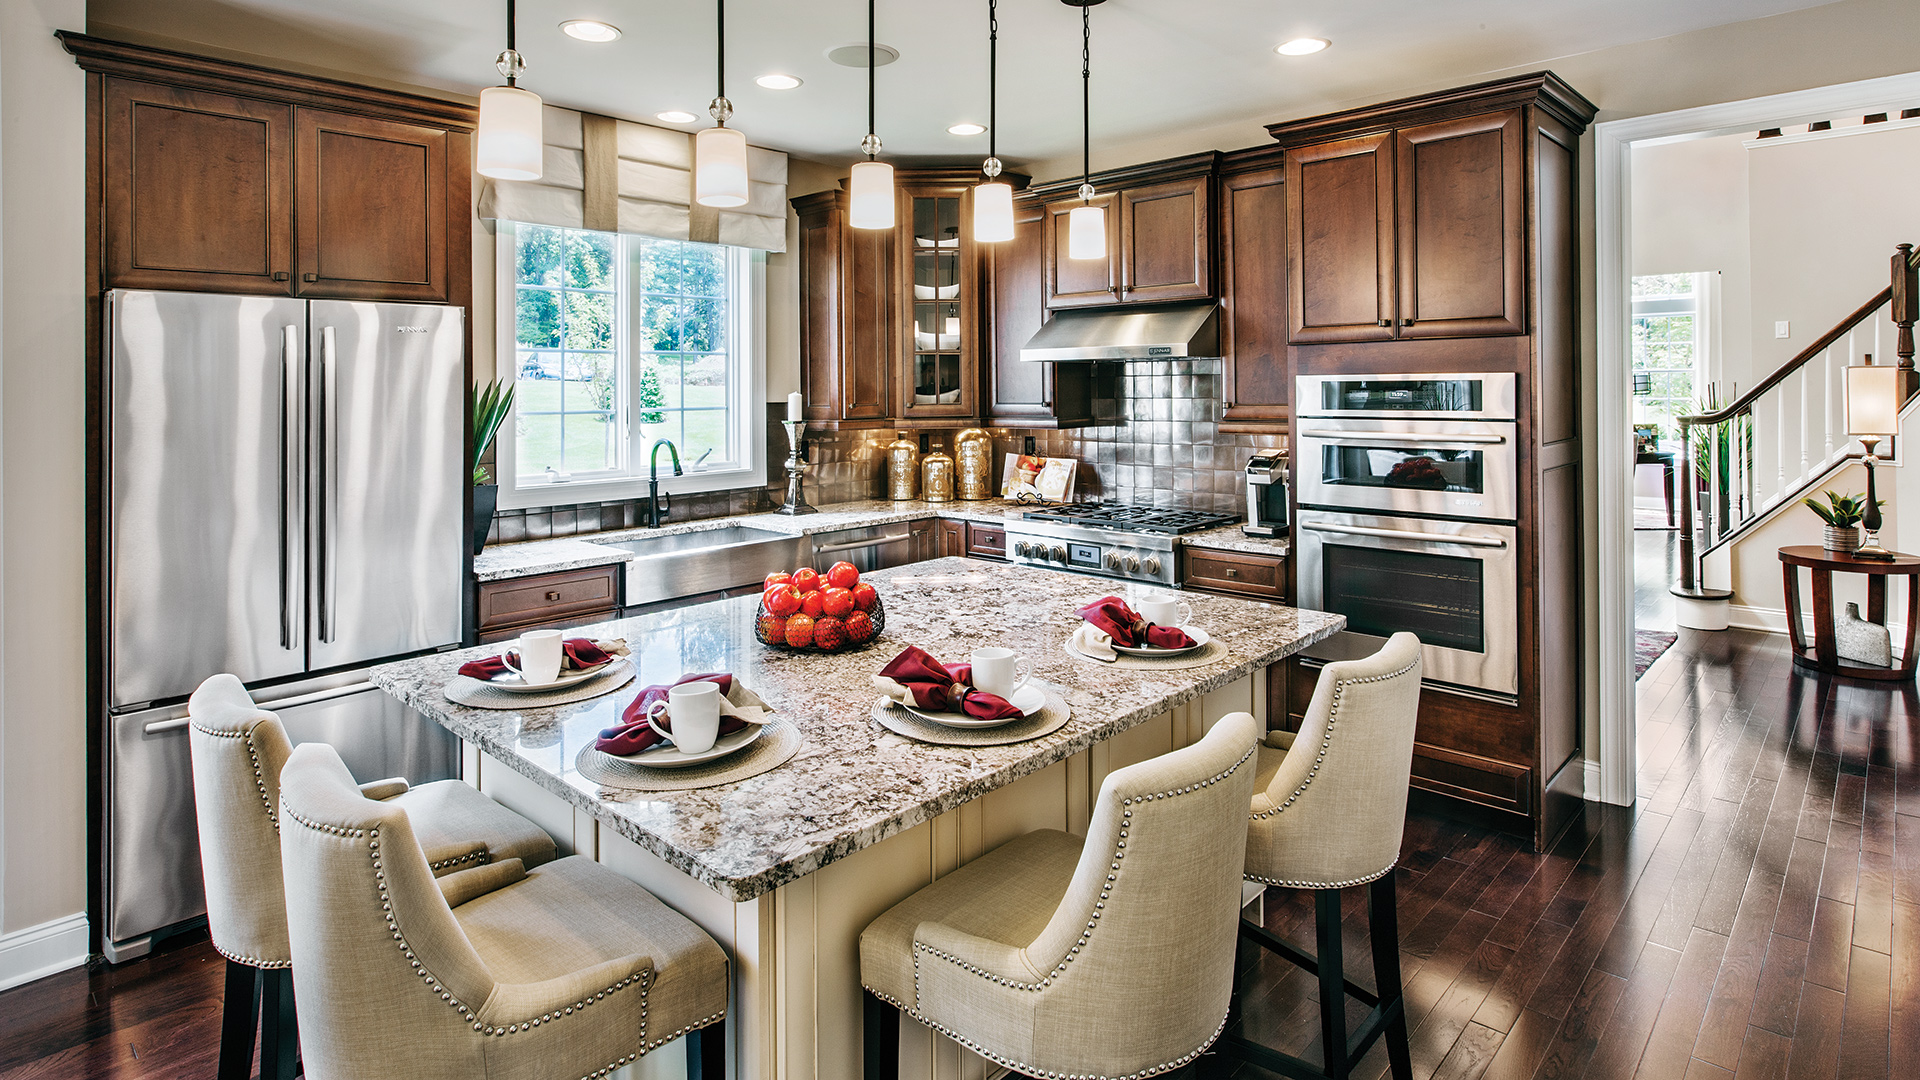 The Bucknell kitchen with stainless-steel appliances